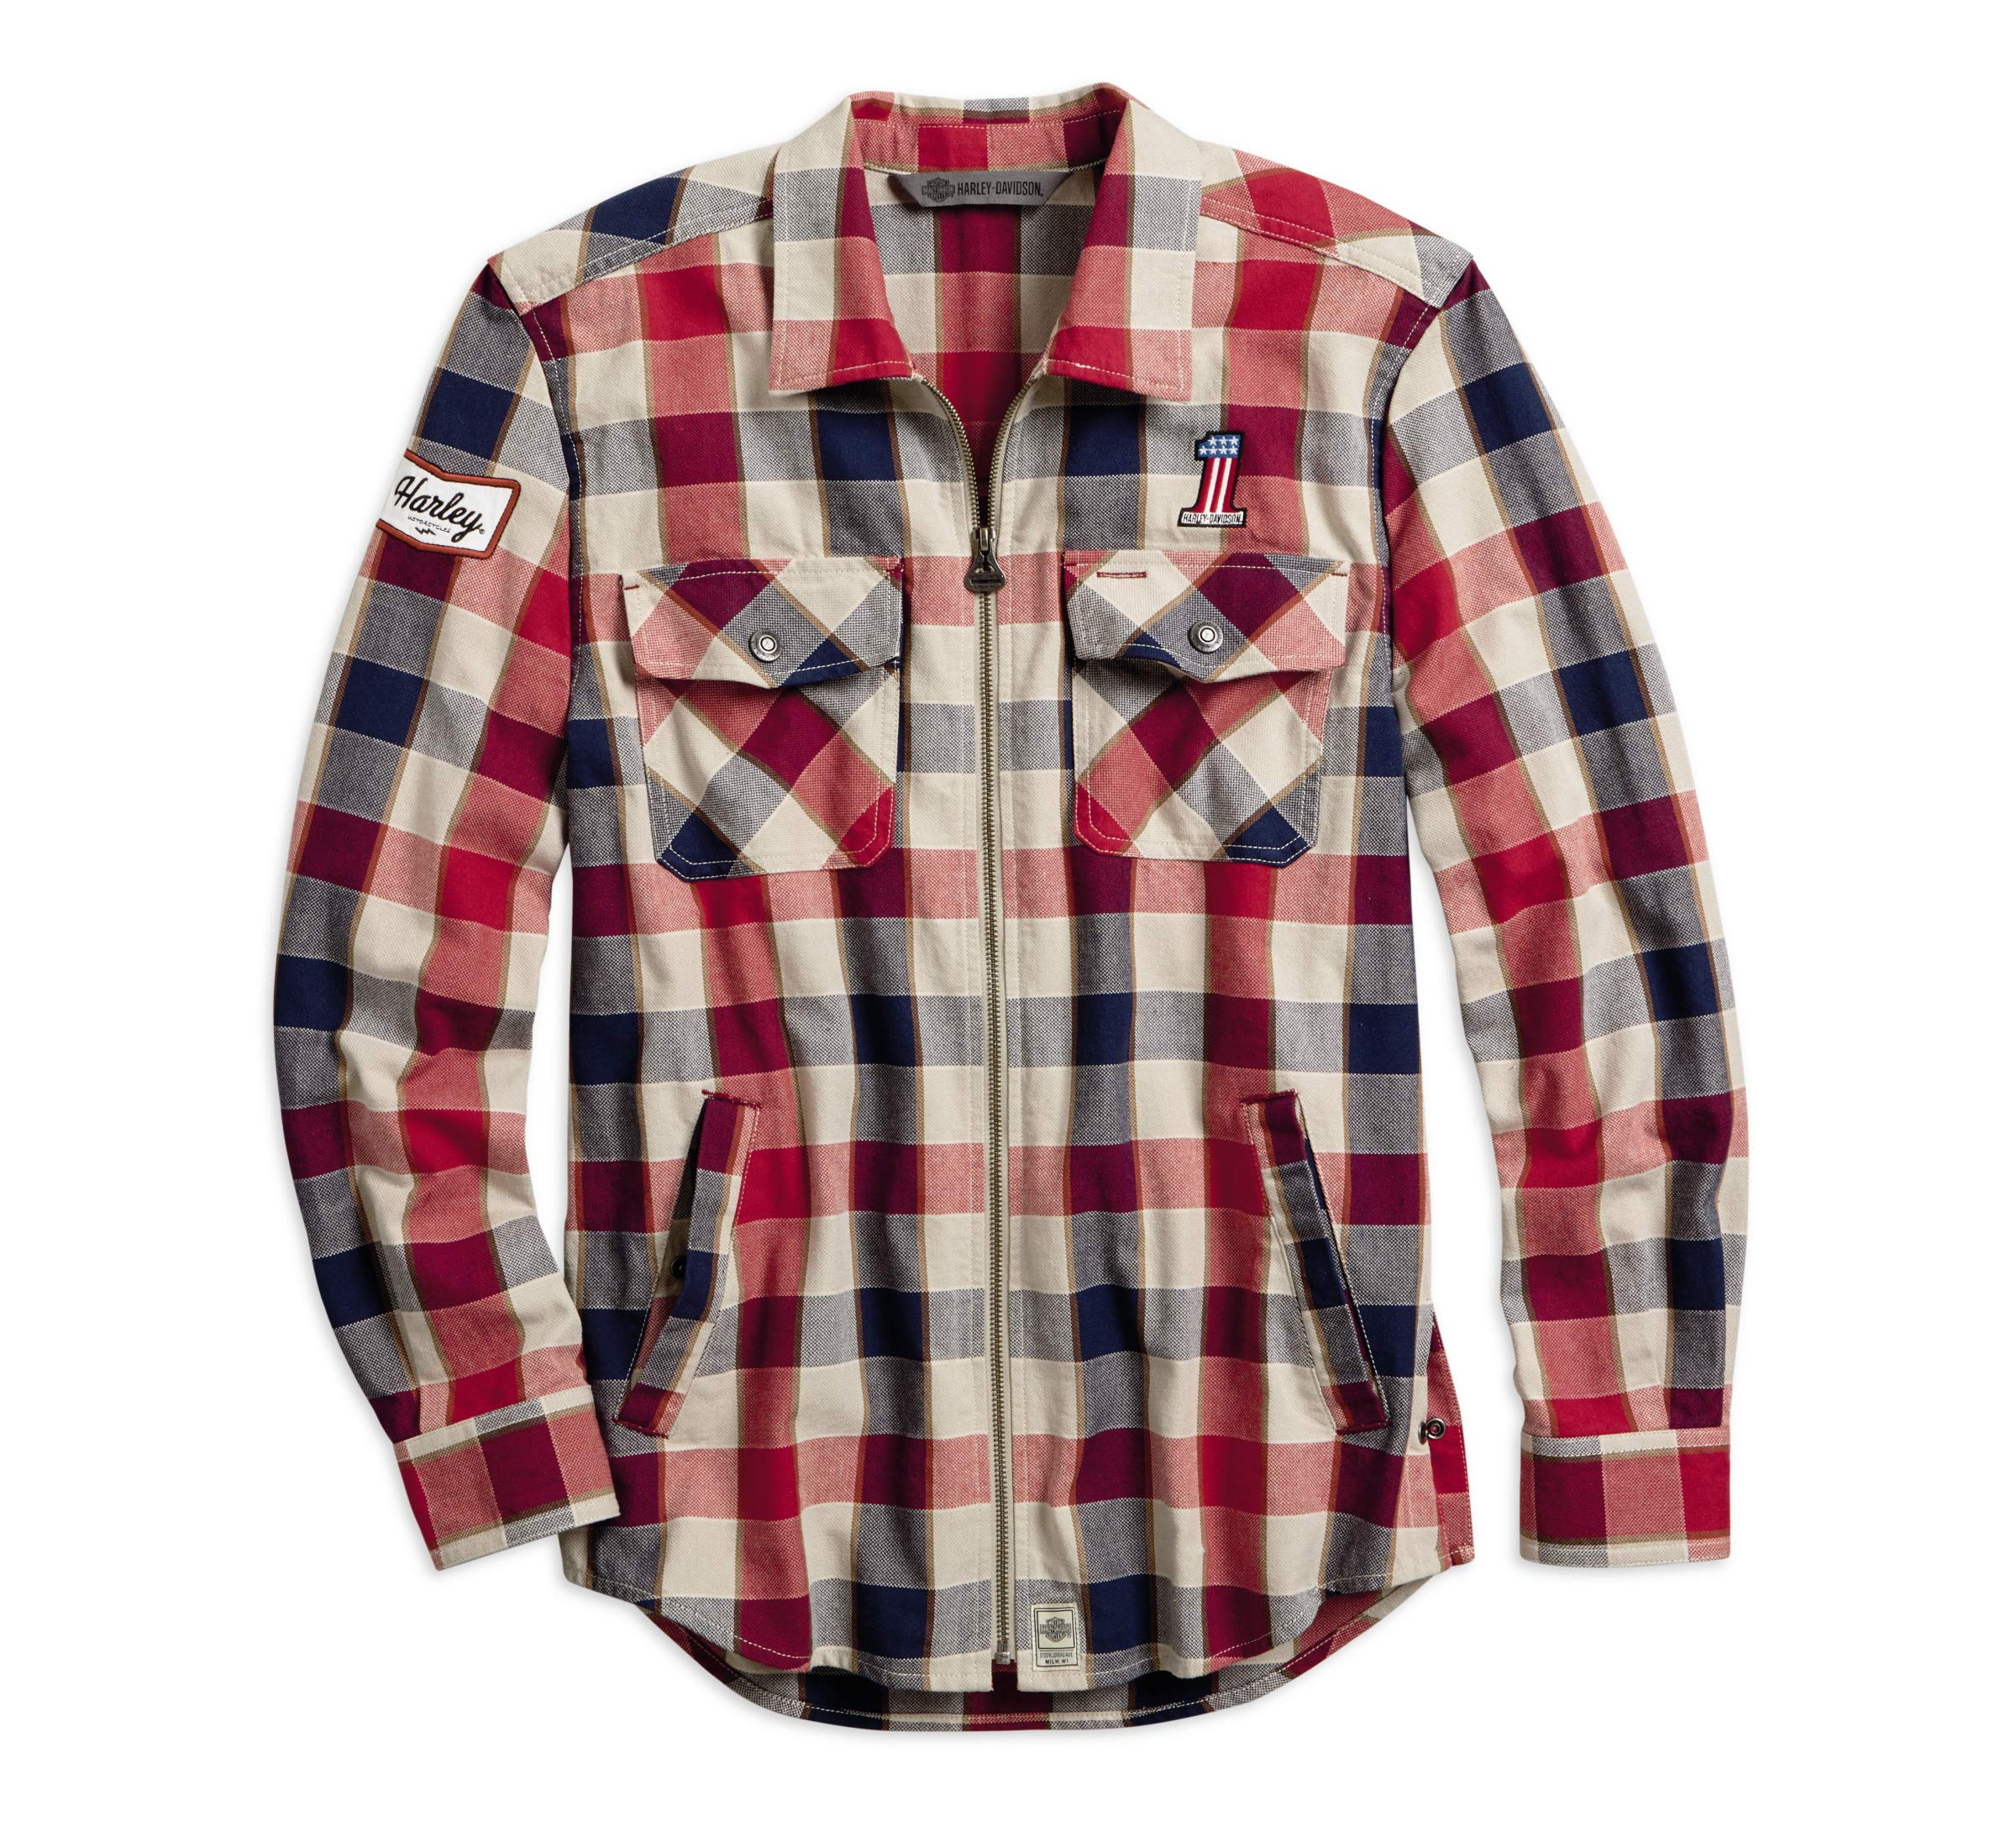 Harley-Davidson Men's #1 Plaid Zippered Shirt